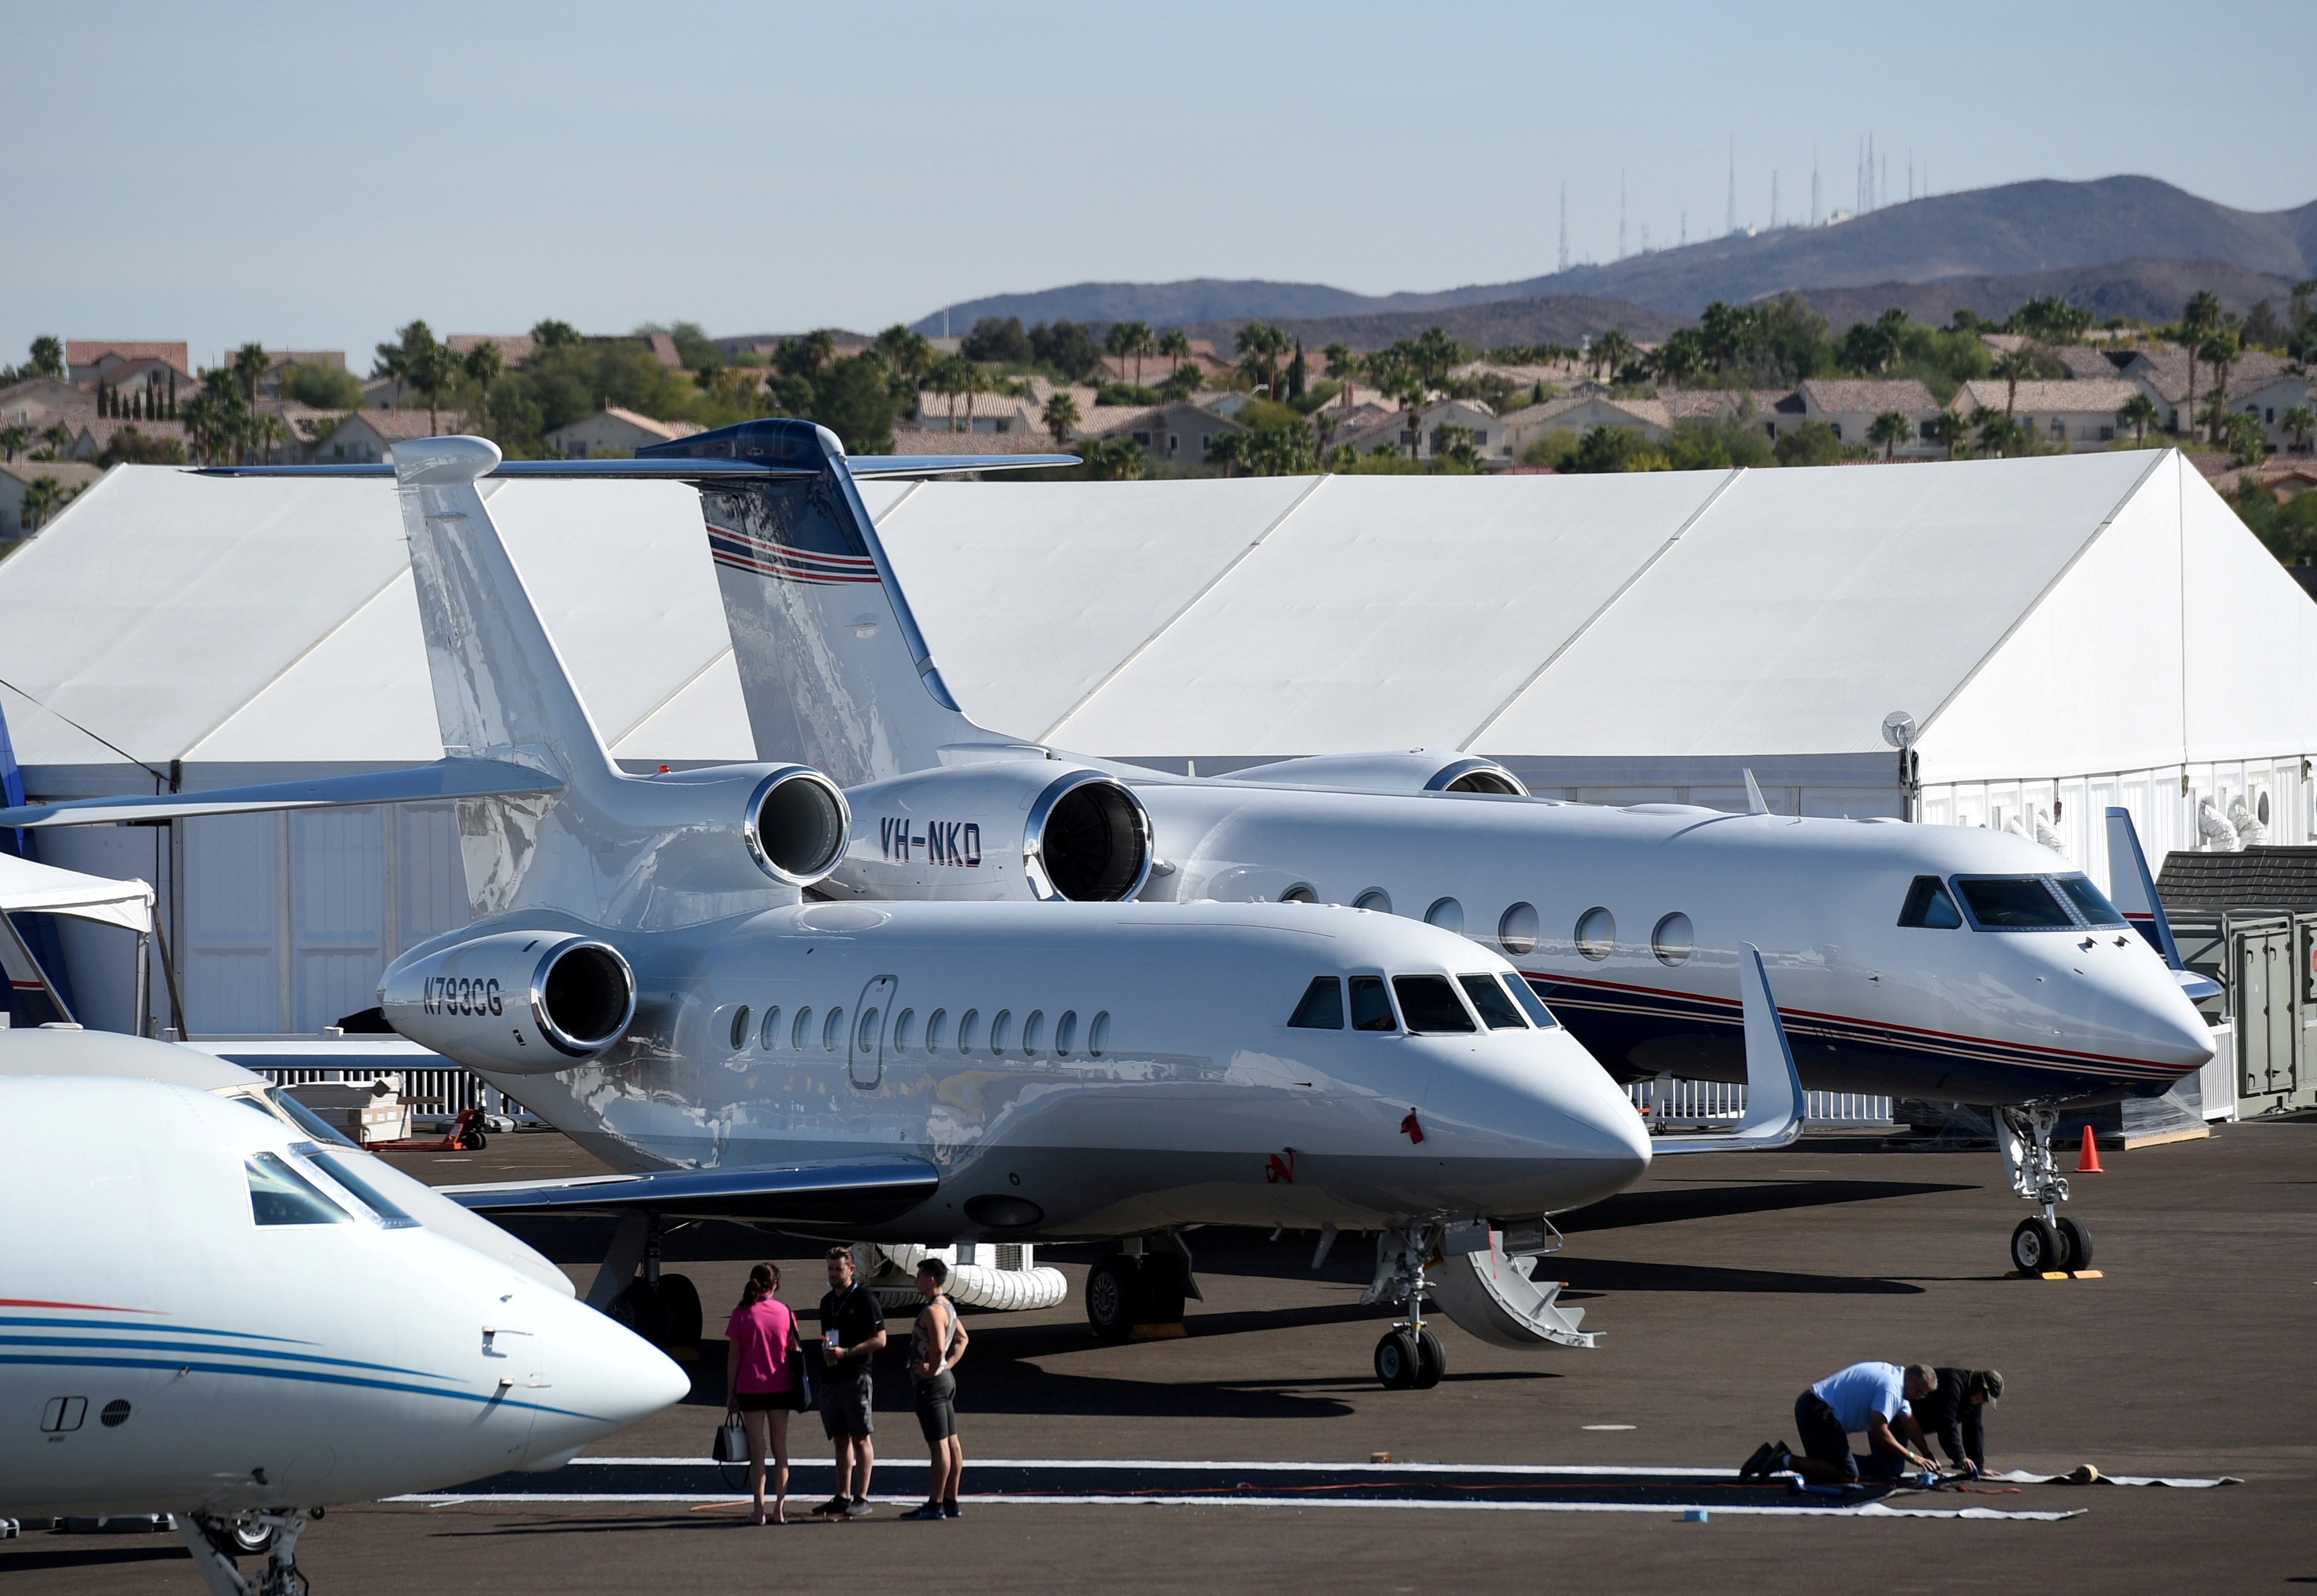 Business jets are seen at the National Business Aviation Association (NBAA) exhibition in Las Vegas, Nevada, U.S. October 21, 2019.  REUTERS/David Becker